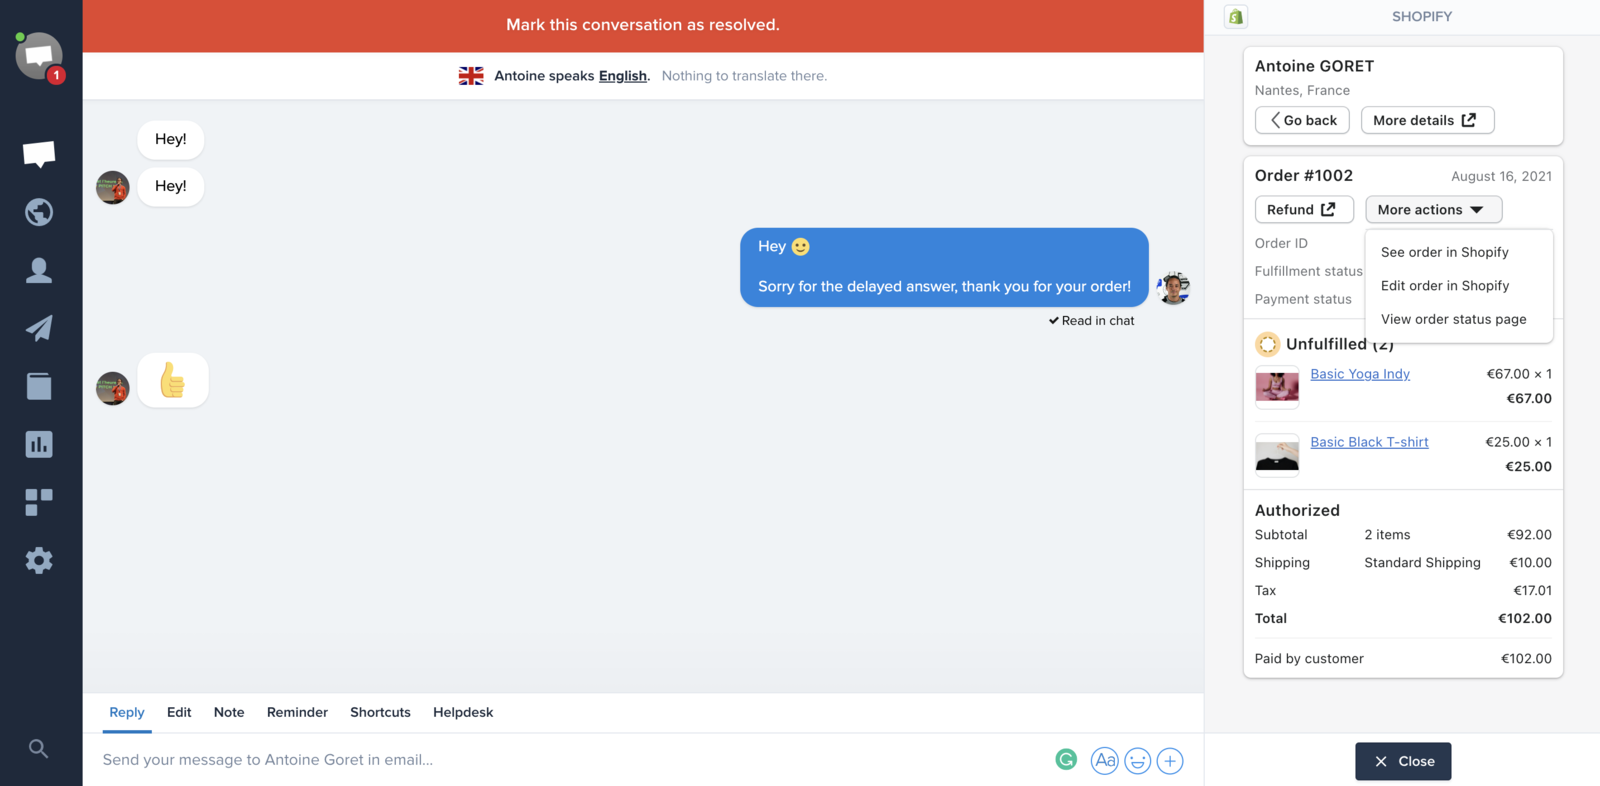 Example of a conversation between a Shopify store and a customer